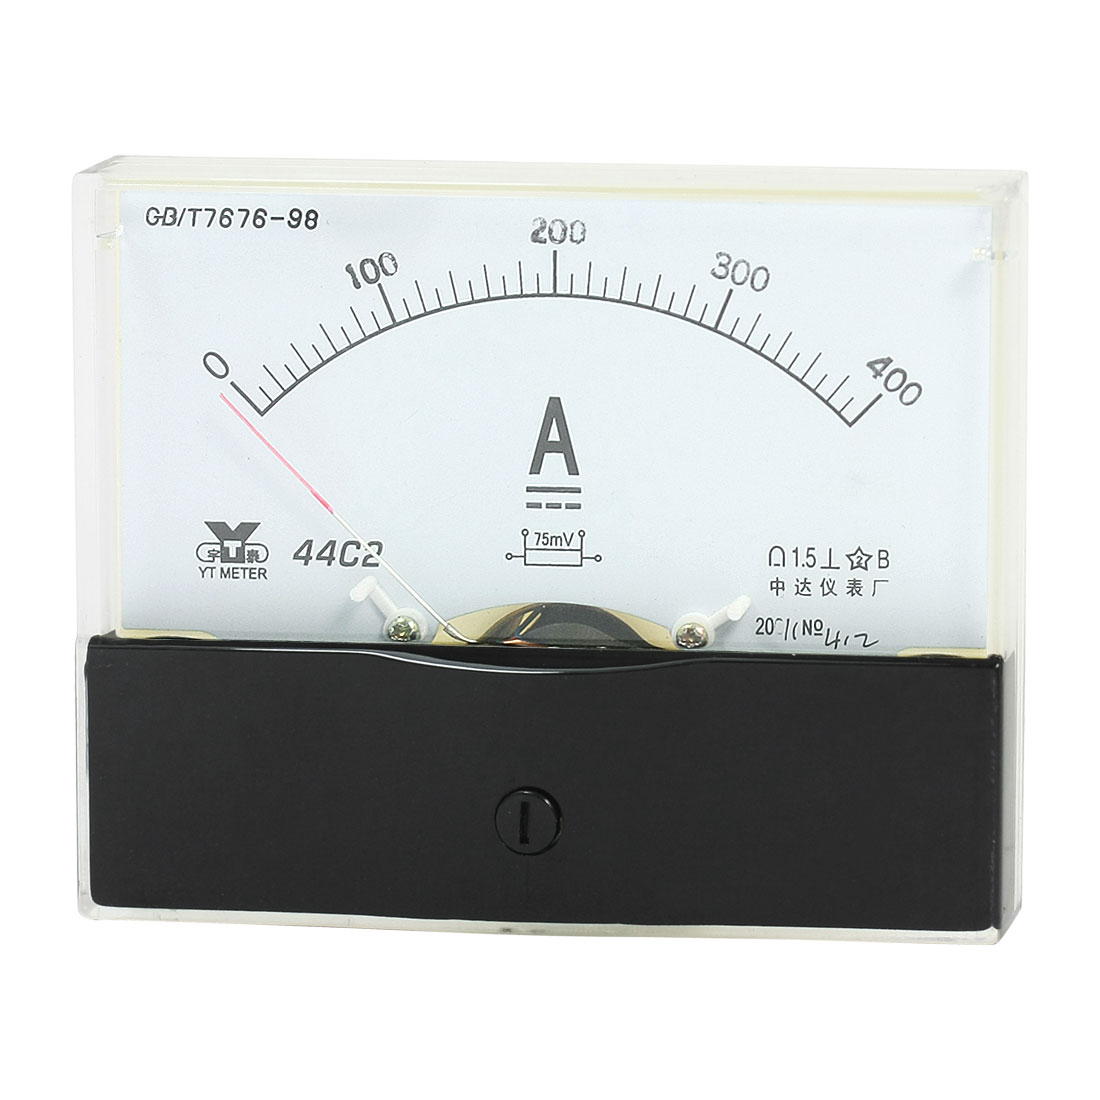 Rectangle Measurement Tool Analog Panel Ammeter Gauge DC 0 - 400A Measuring Range 44C2